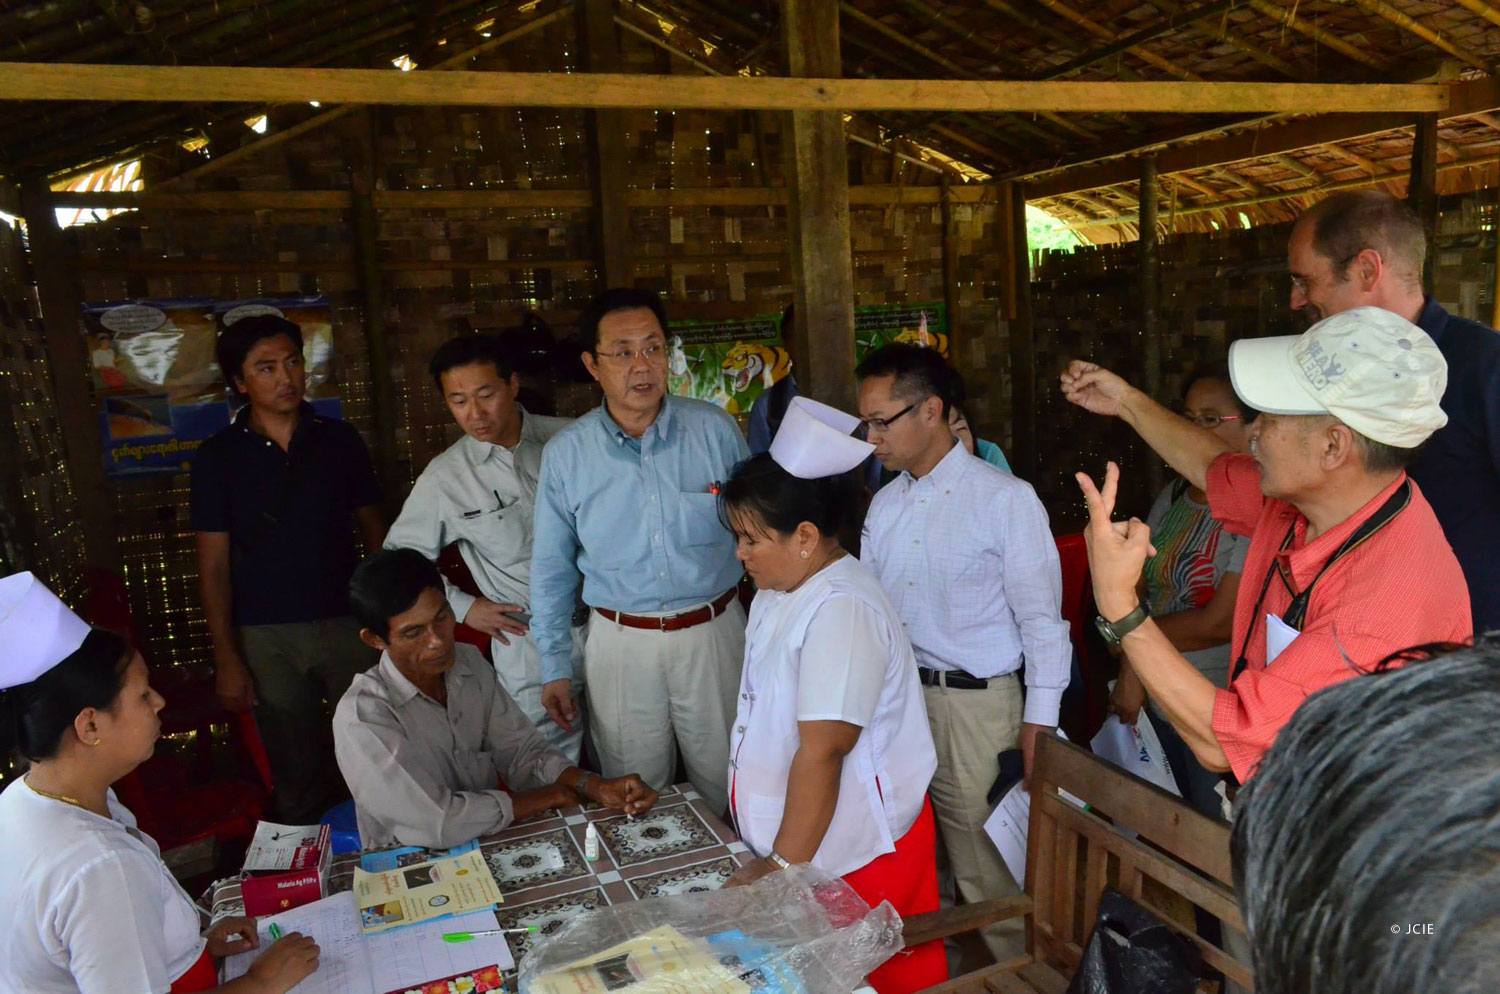 Diet members visit a malaria project funded by JICA